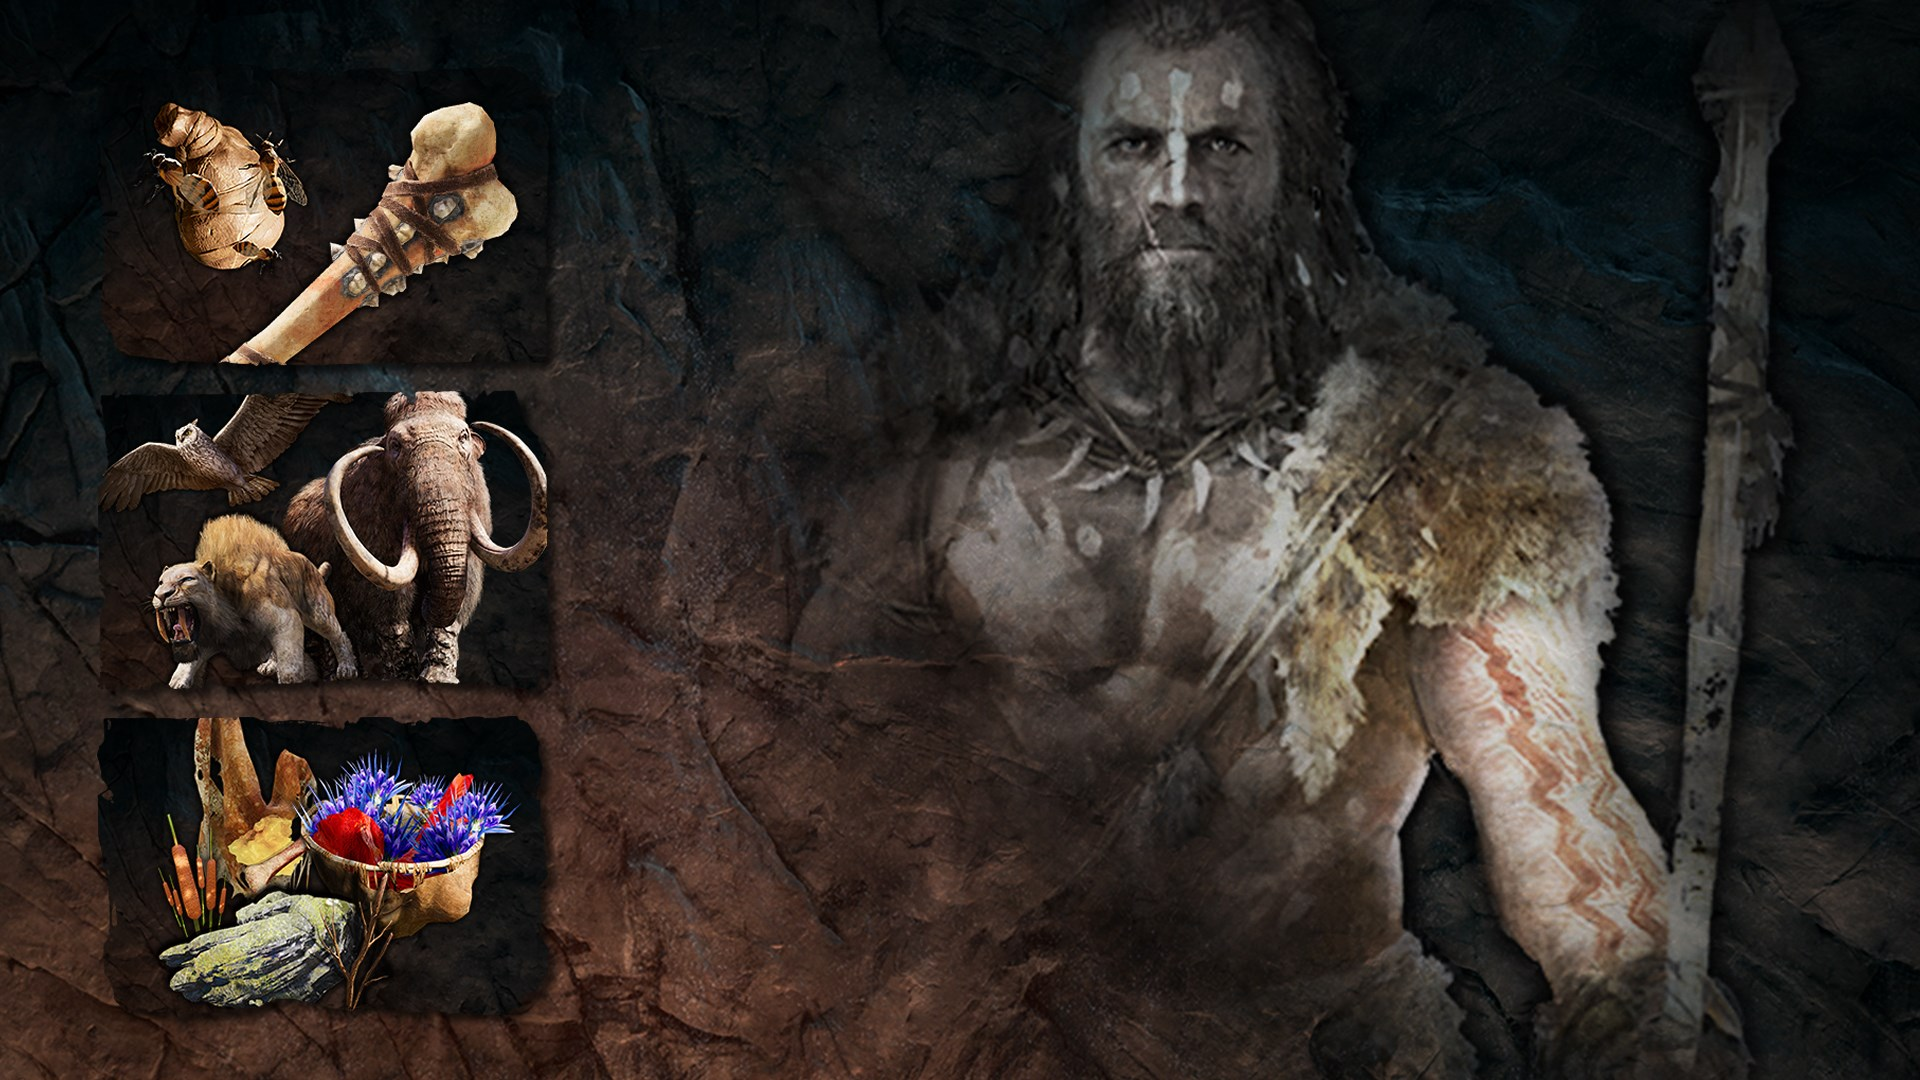 Far Cry Primal Hd Wallpaper Posted By Michelle Mercado